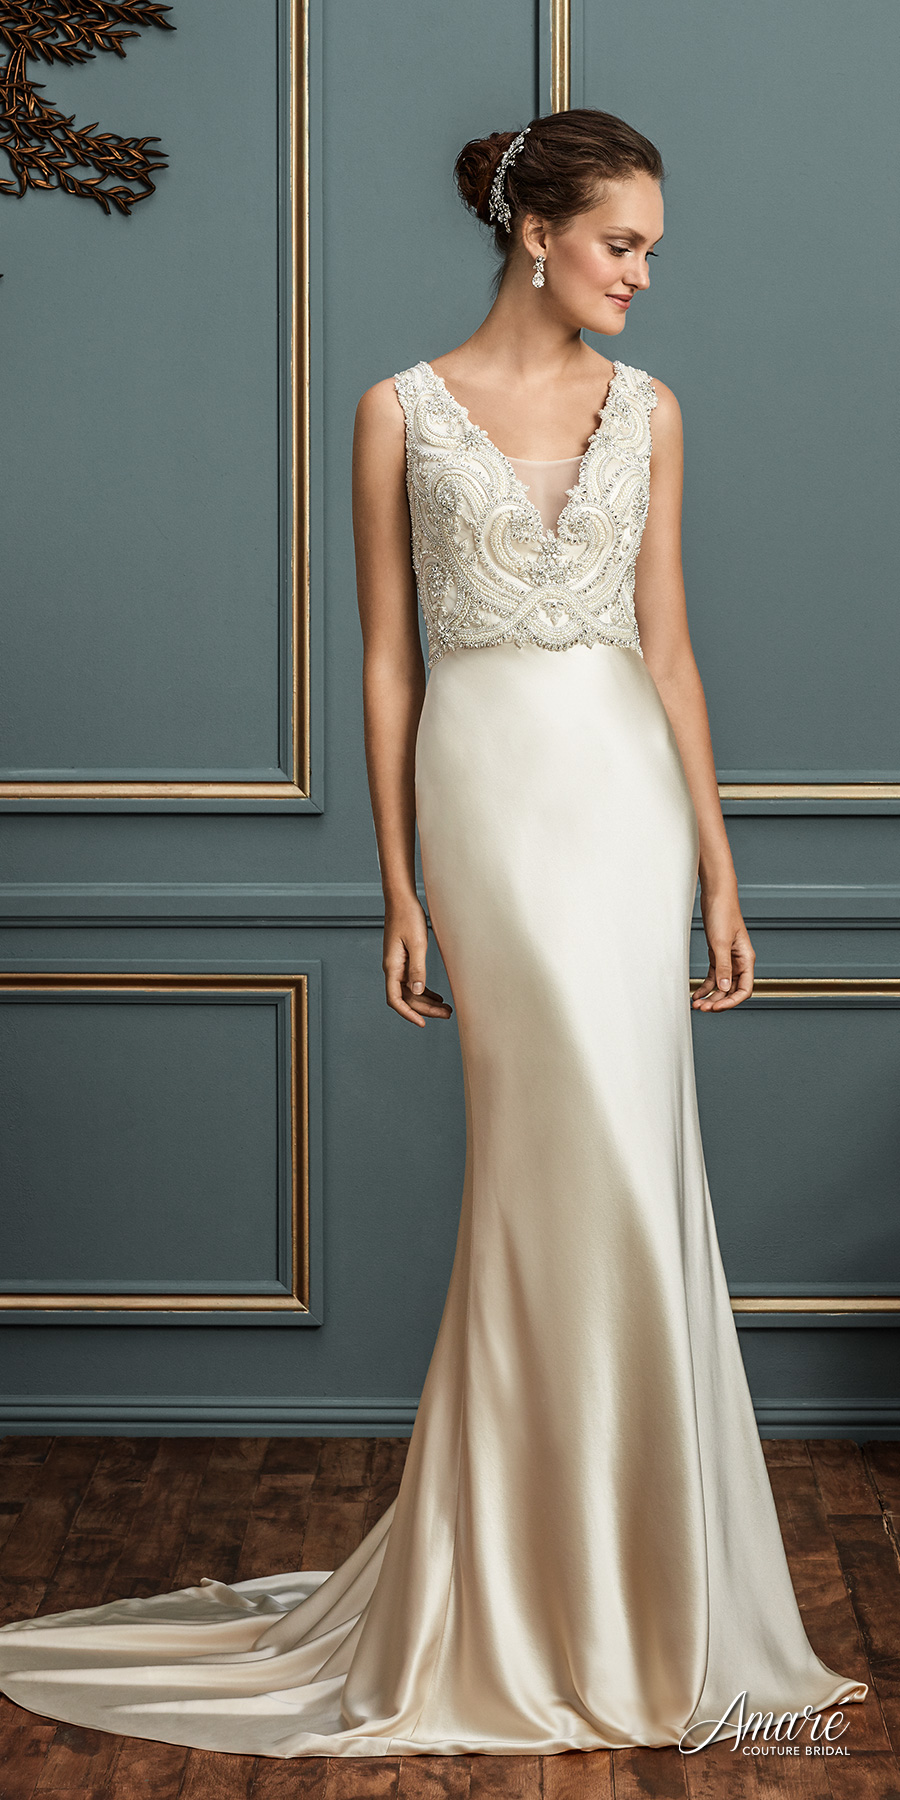 amare couture spring 2017 bridal sleeveless deep v neck heavily embellished bodice satin skirt elegant glamorous sheath wedding dress chapel train open v back chapel train (charlotte) mv